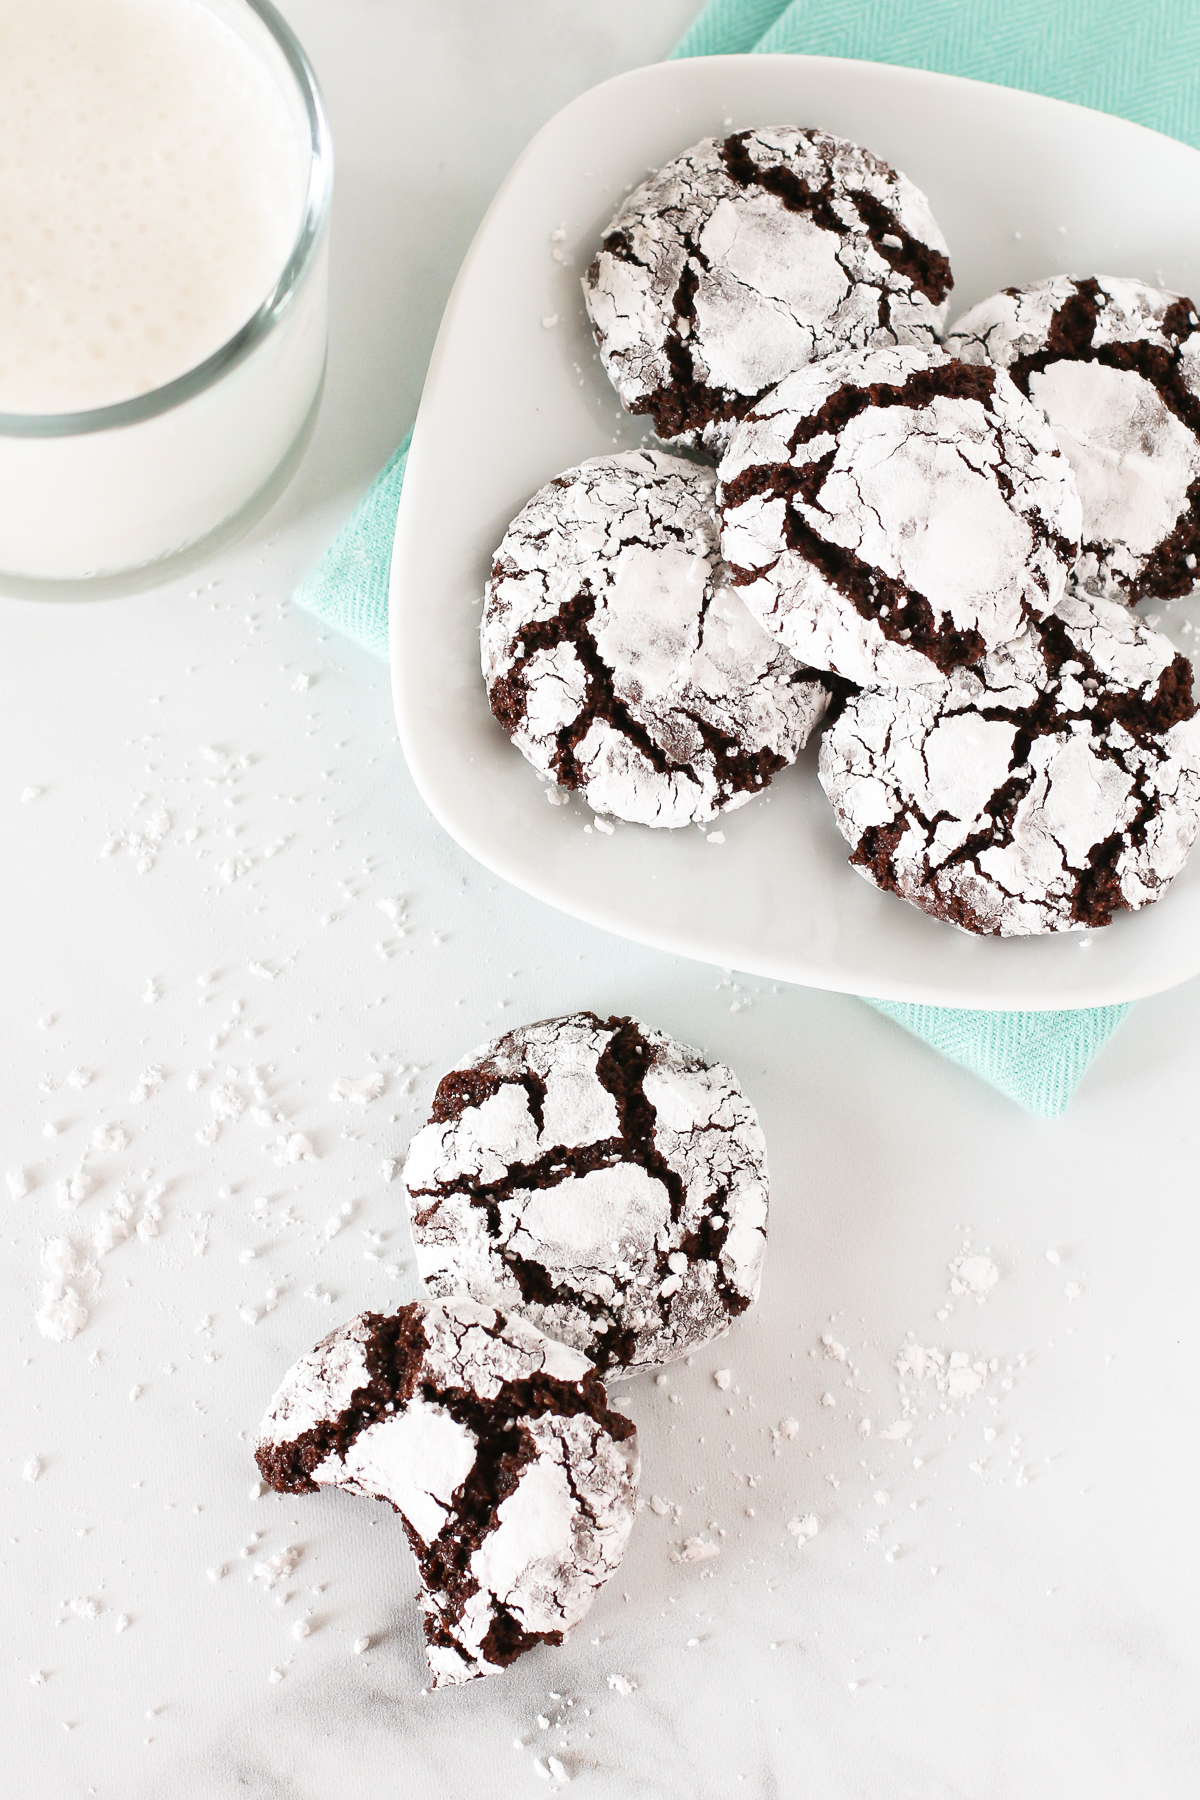 Gluten Free Vegan Chocolate Crinkle Cookies. The classic chewy chocolate cookie, coated in powdered sugar and completely irresistible.